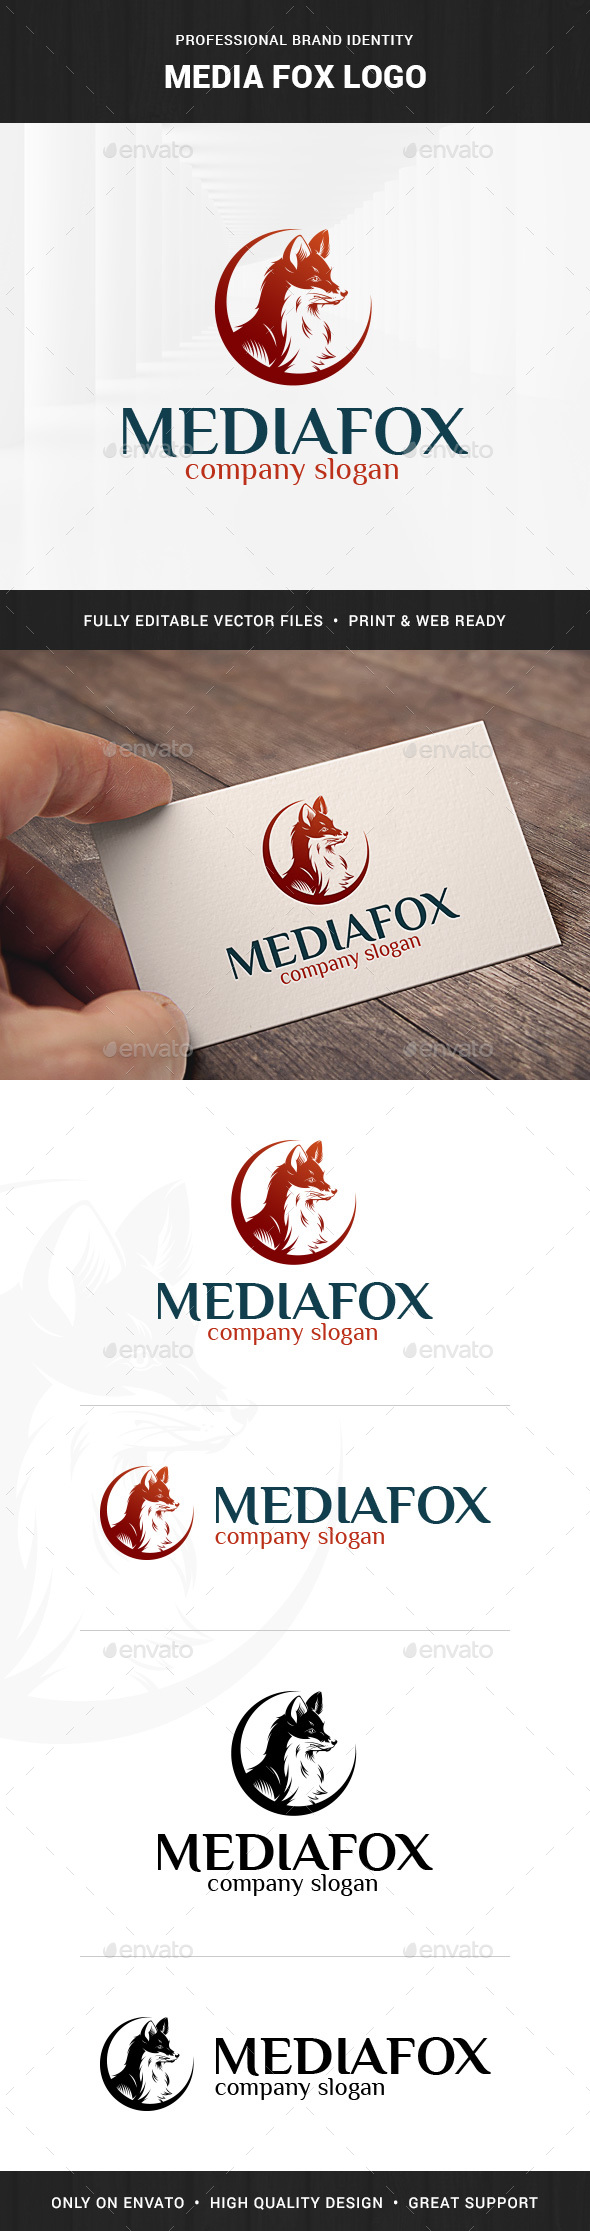 Media Fox Logo Template - Animals Logo Templates